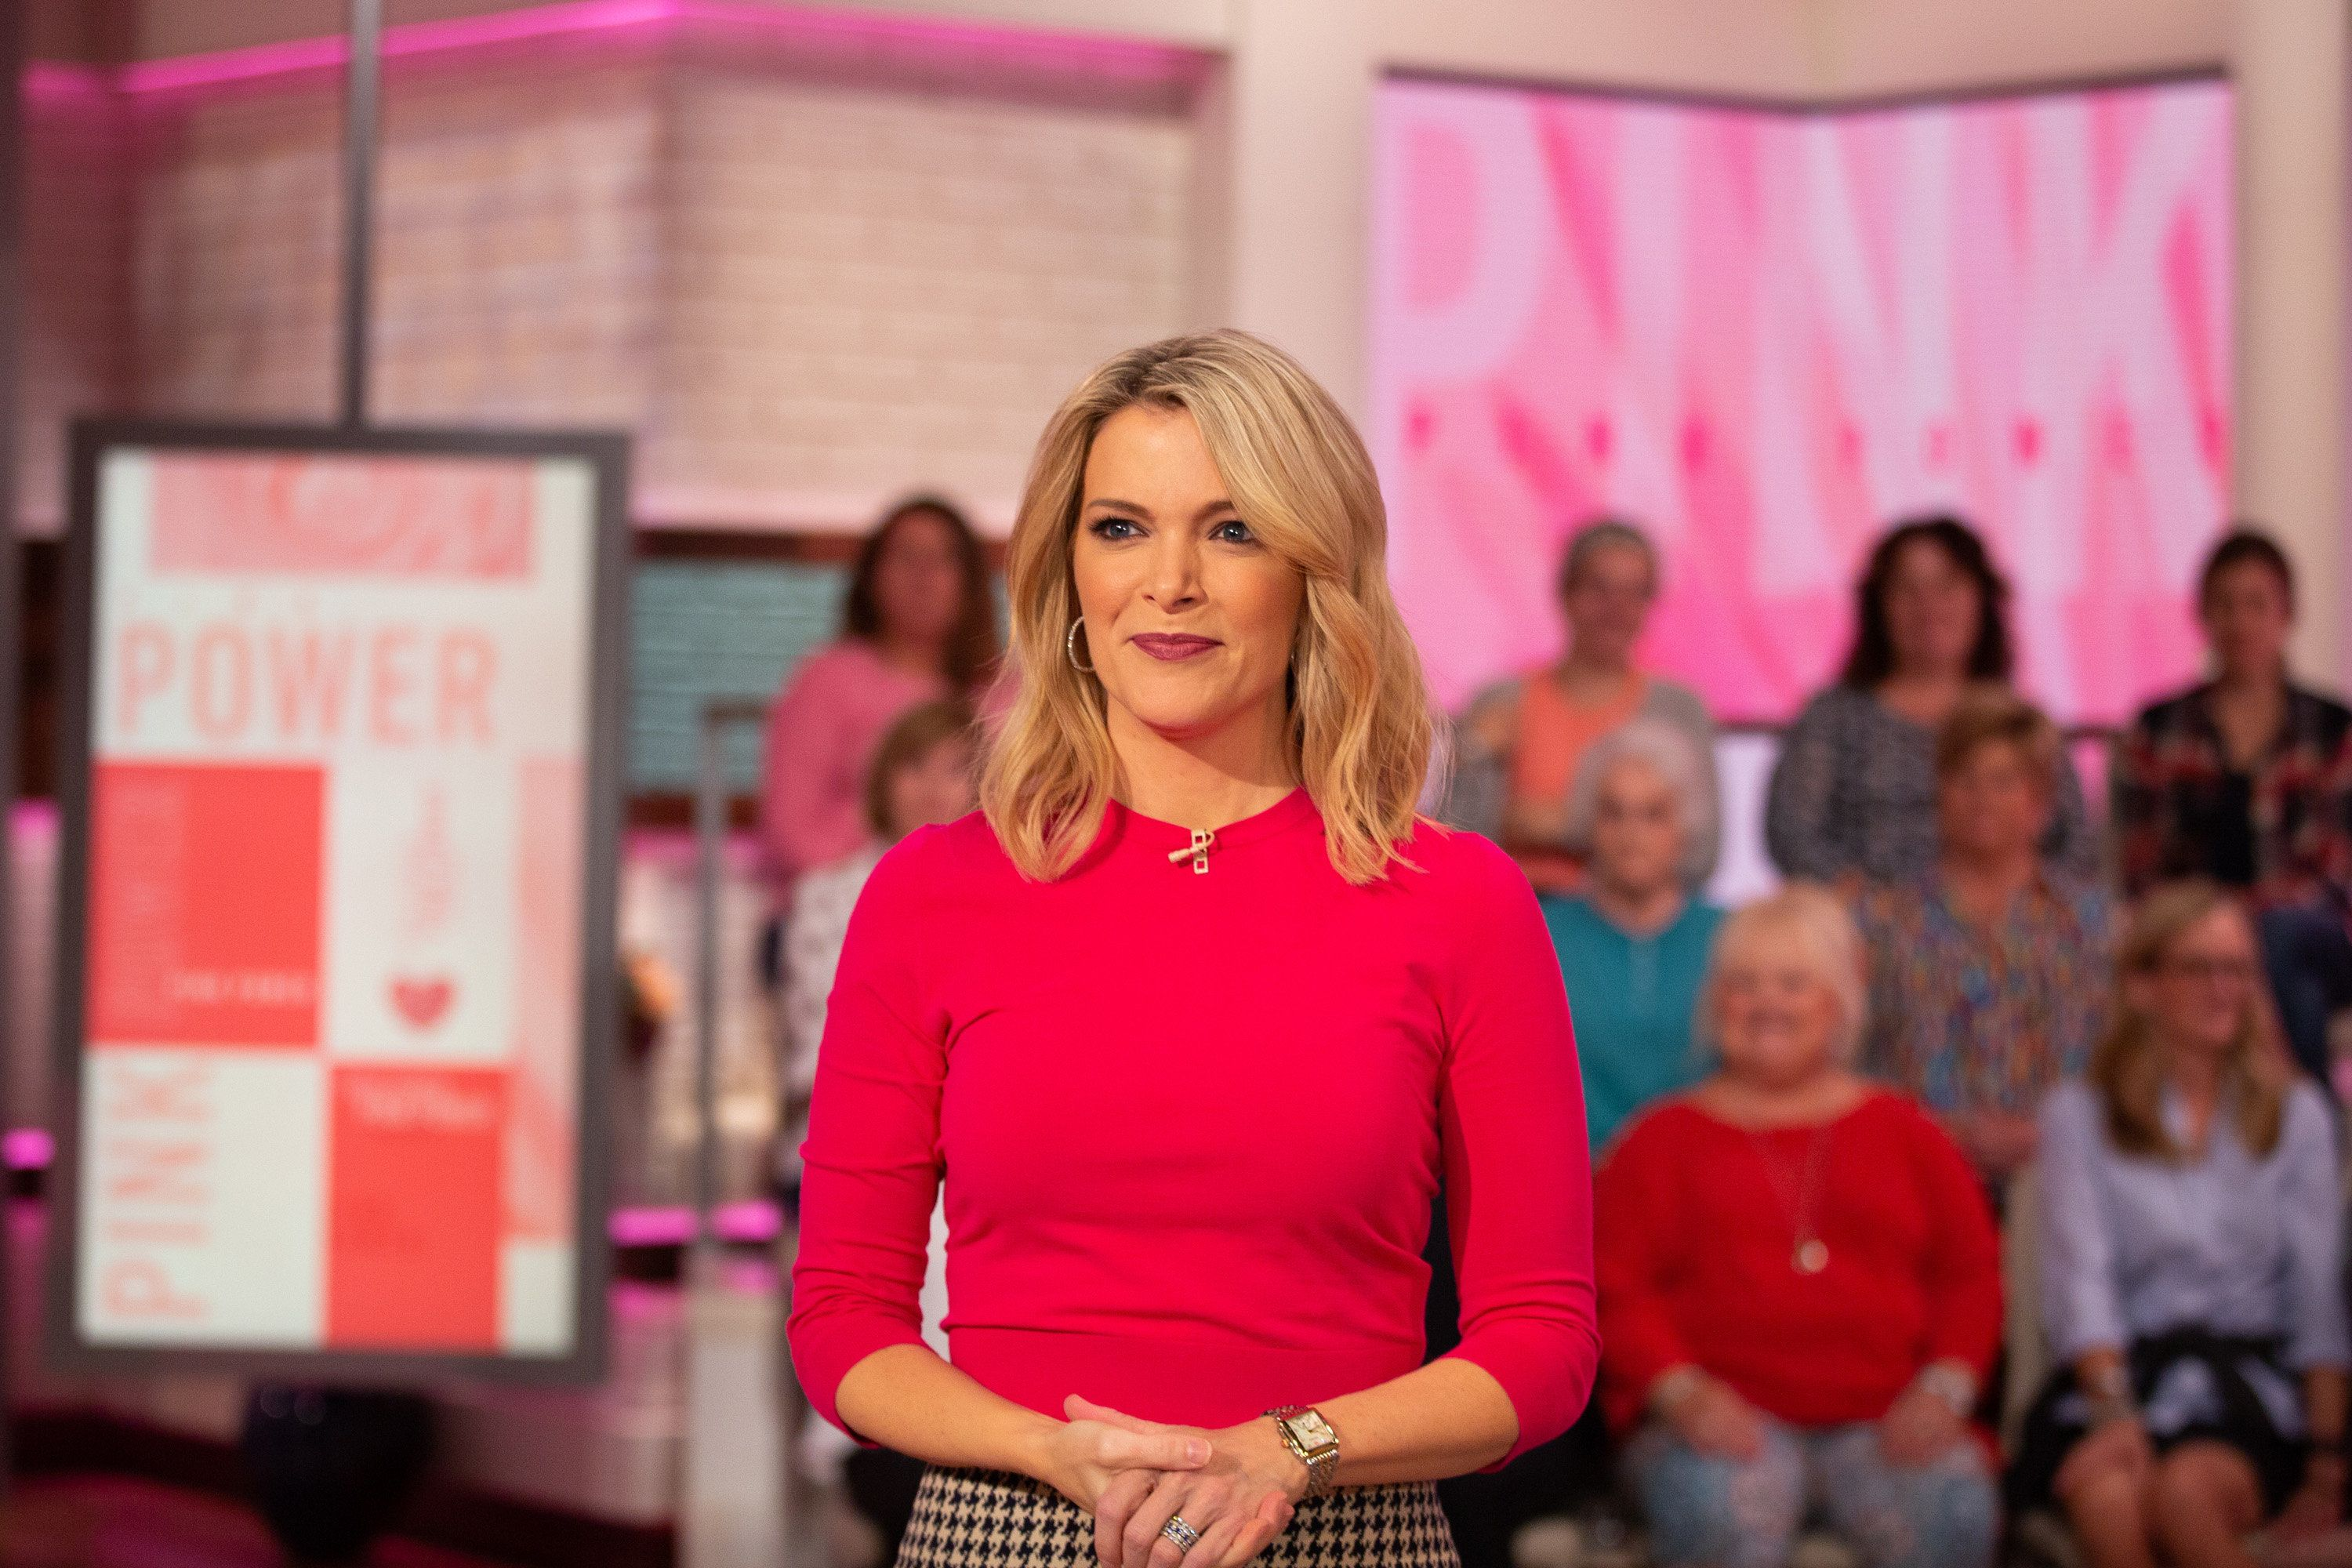 Is Megyn Kelly's NBC show doomed? Reports swirl about host's future at the network.